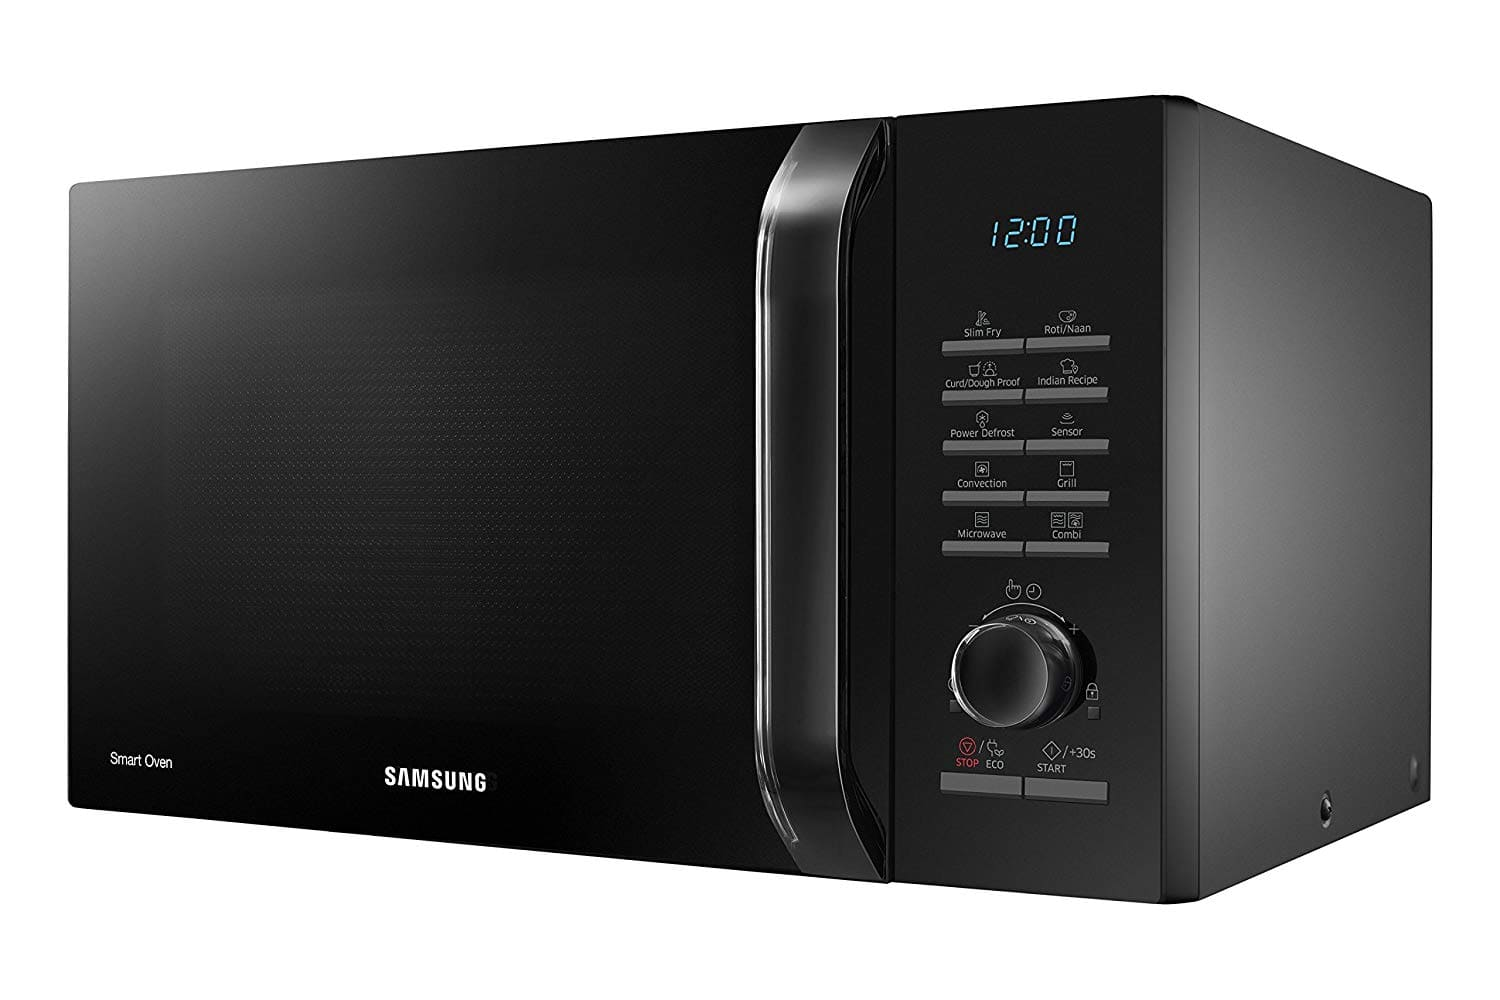 Samsung 28L Convection Microwave Oven (TL, Black)